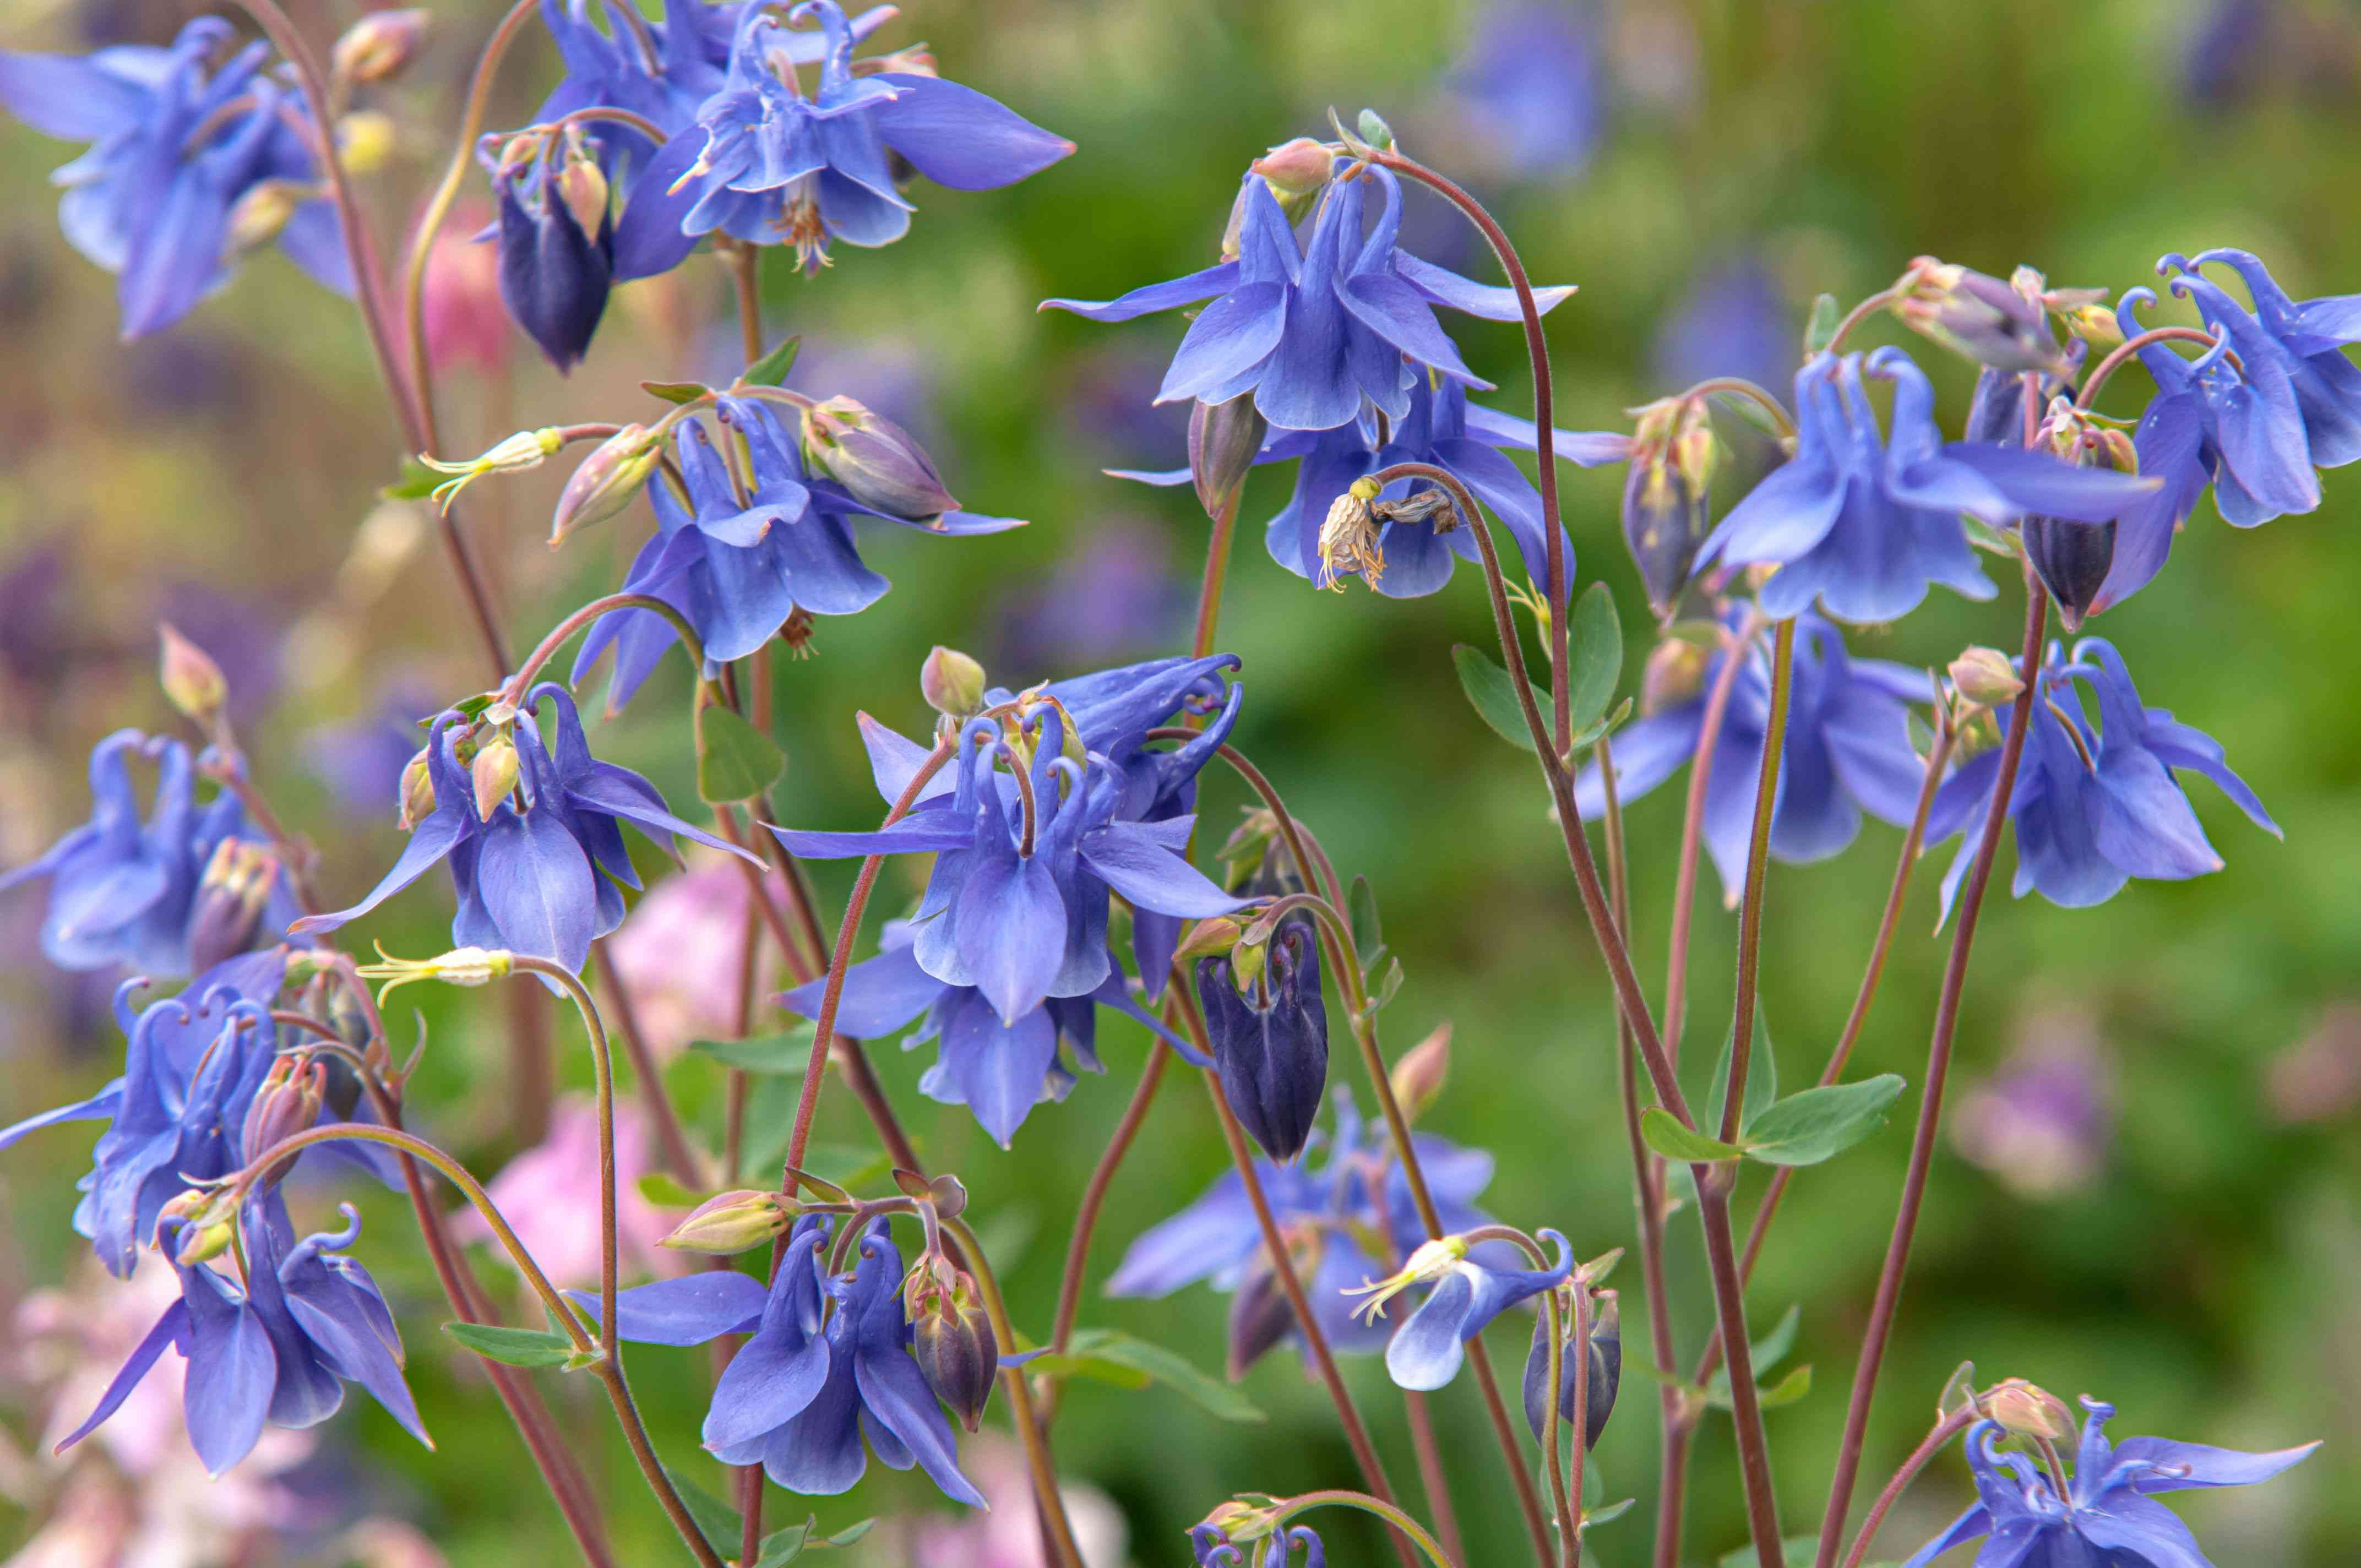 Columbine plant with blue-purple flowers on thin red stems